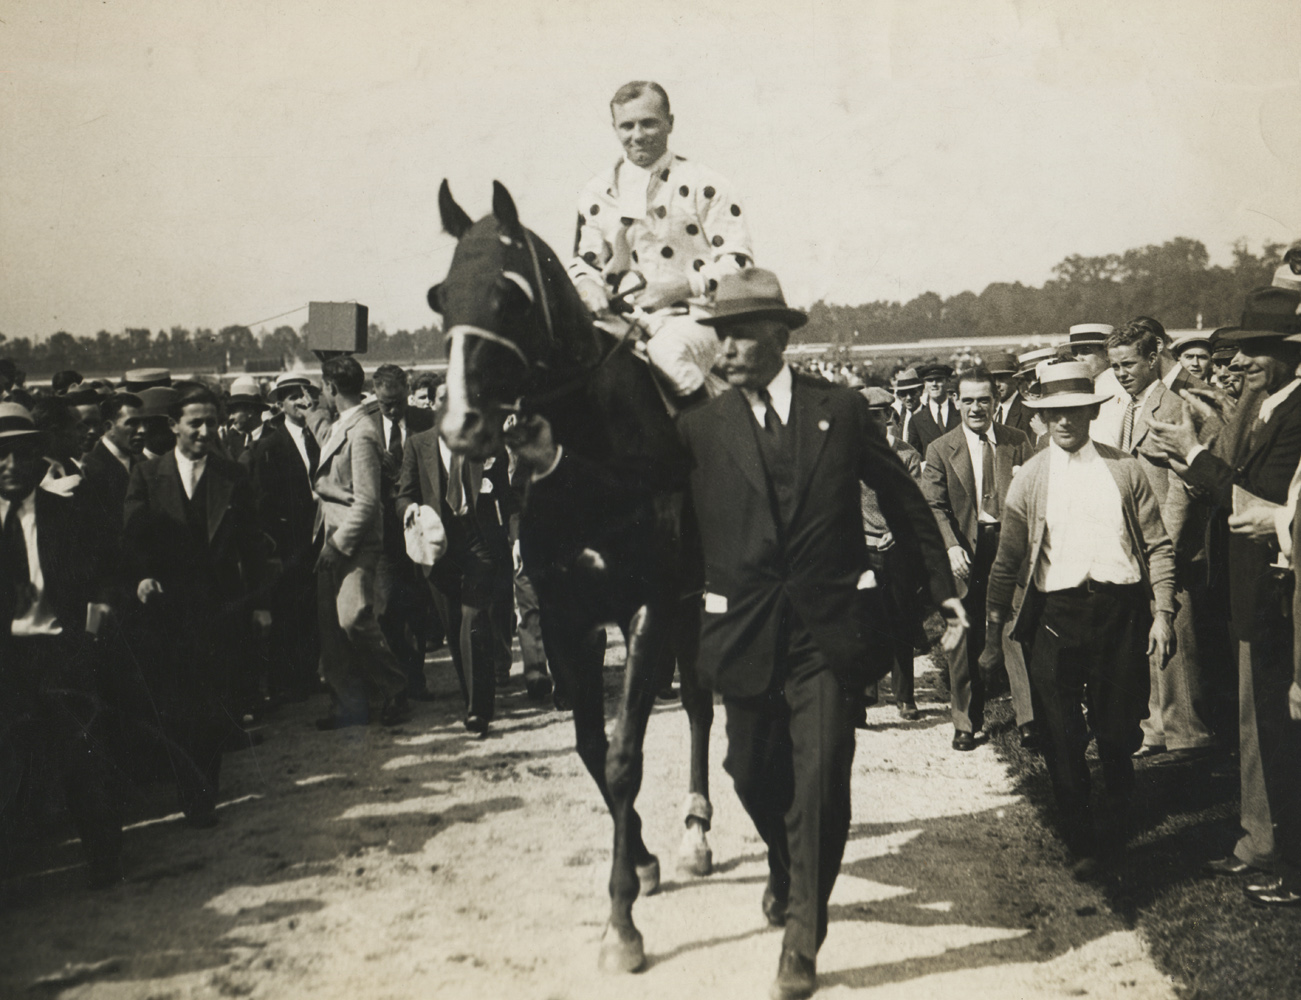 Owner William Woodward, Jr. leading in Gallant Fox and Earl Sande after winning the 1930 Lawrence Realization at Belmont Park (Pictorial Press Photos/Museum Collection)